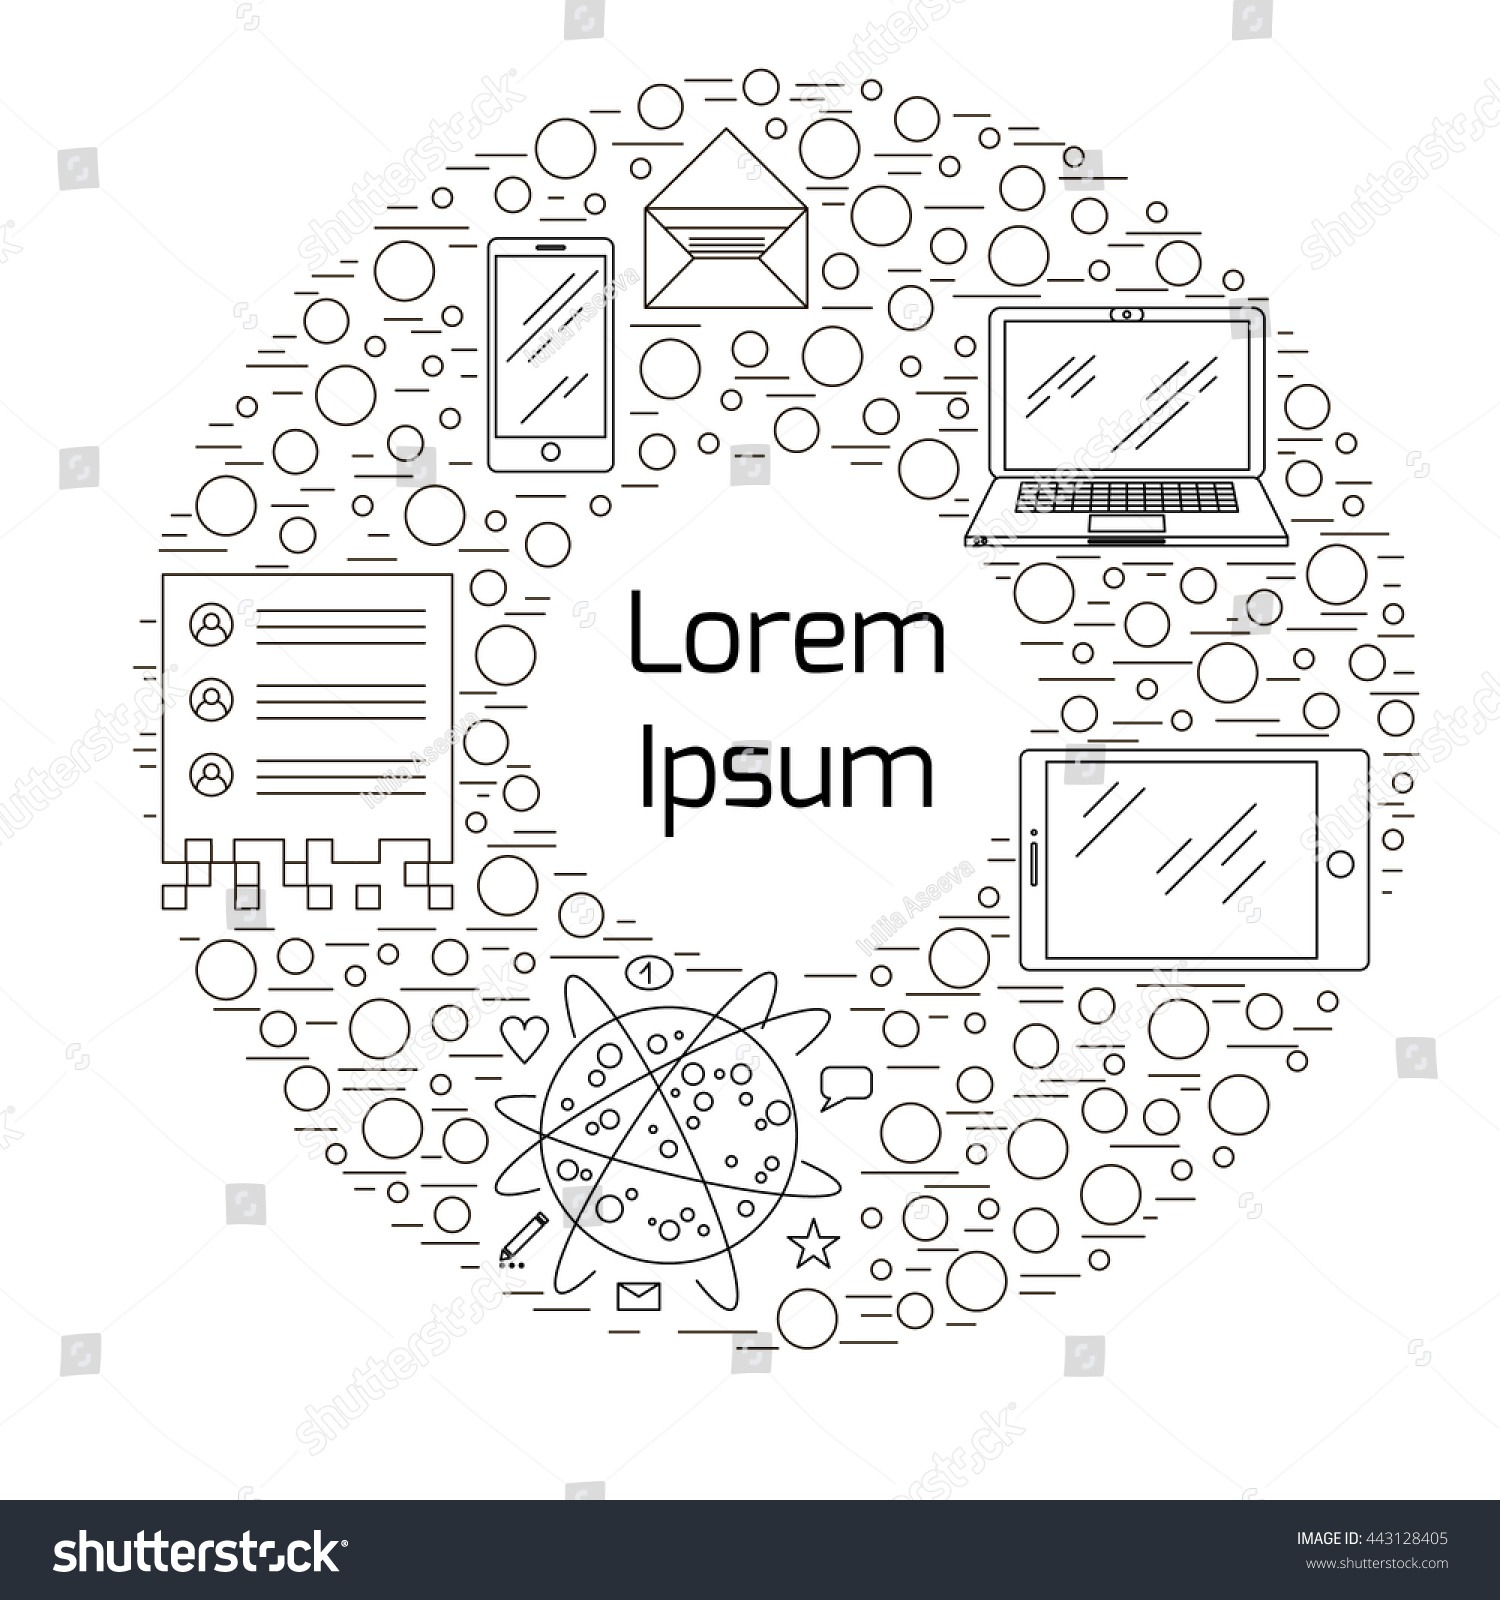 illustration on topic technology mass media stock vector  illustration on topic of technology and mass media linear vector icons mini stic and simple